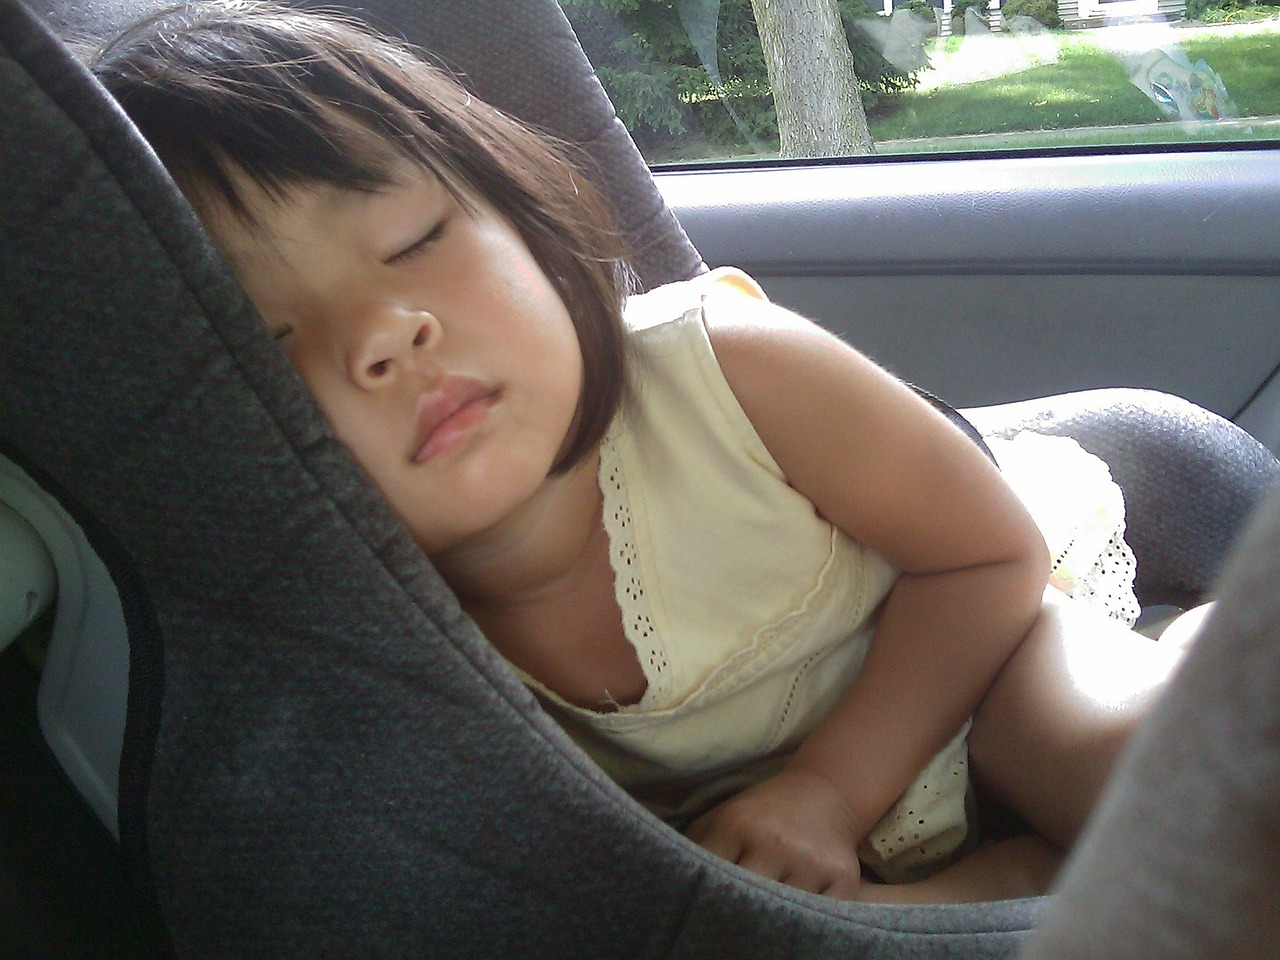 child, sleeping, car seat